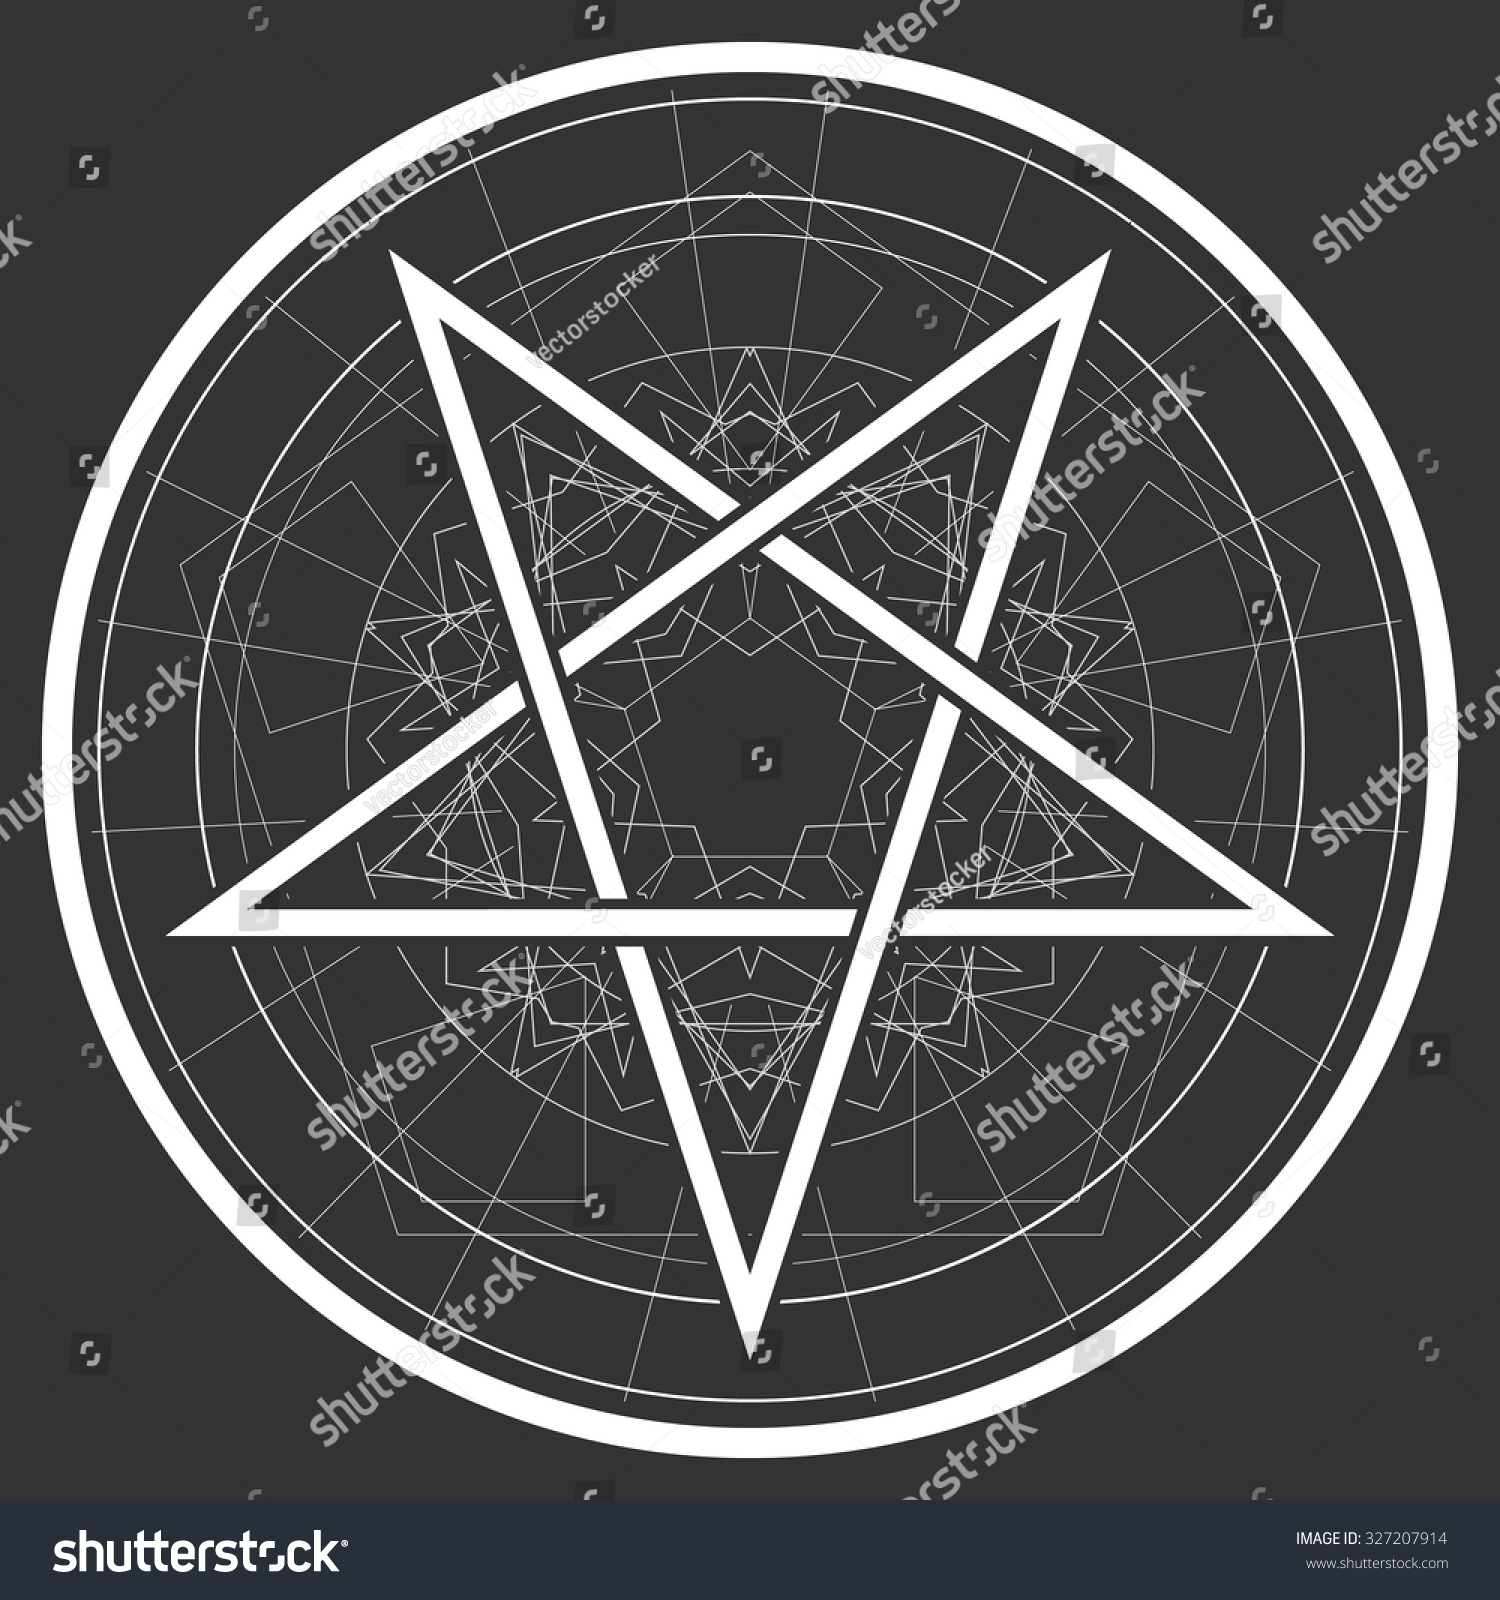 Baphomet Star Reversed Pentagram Satanic Sign Stock Vector Royalty